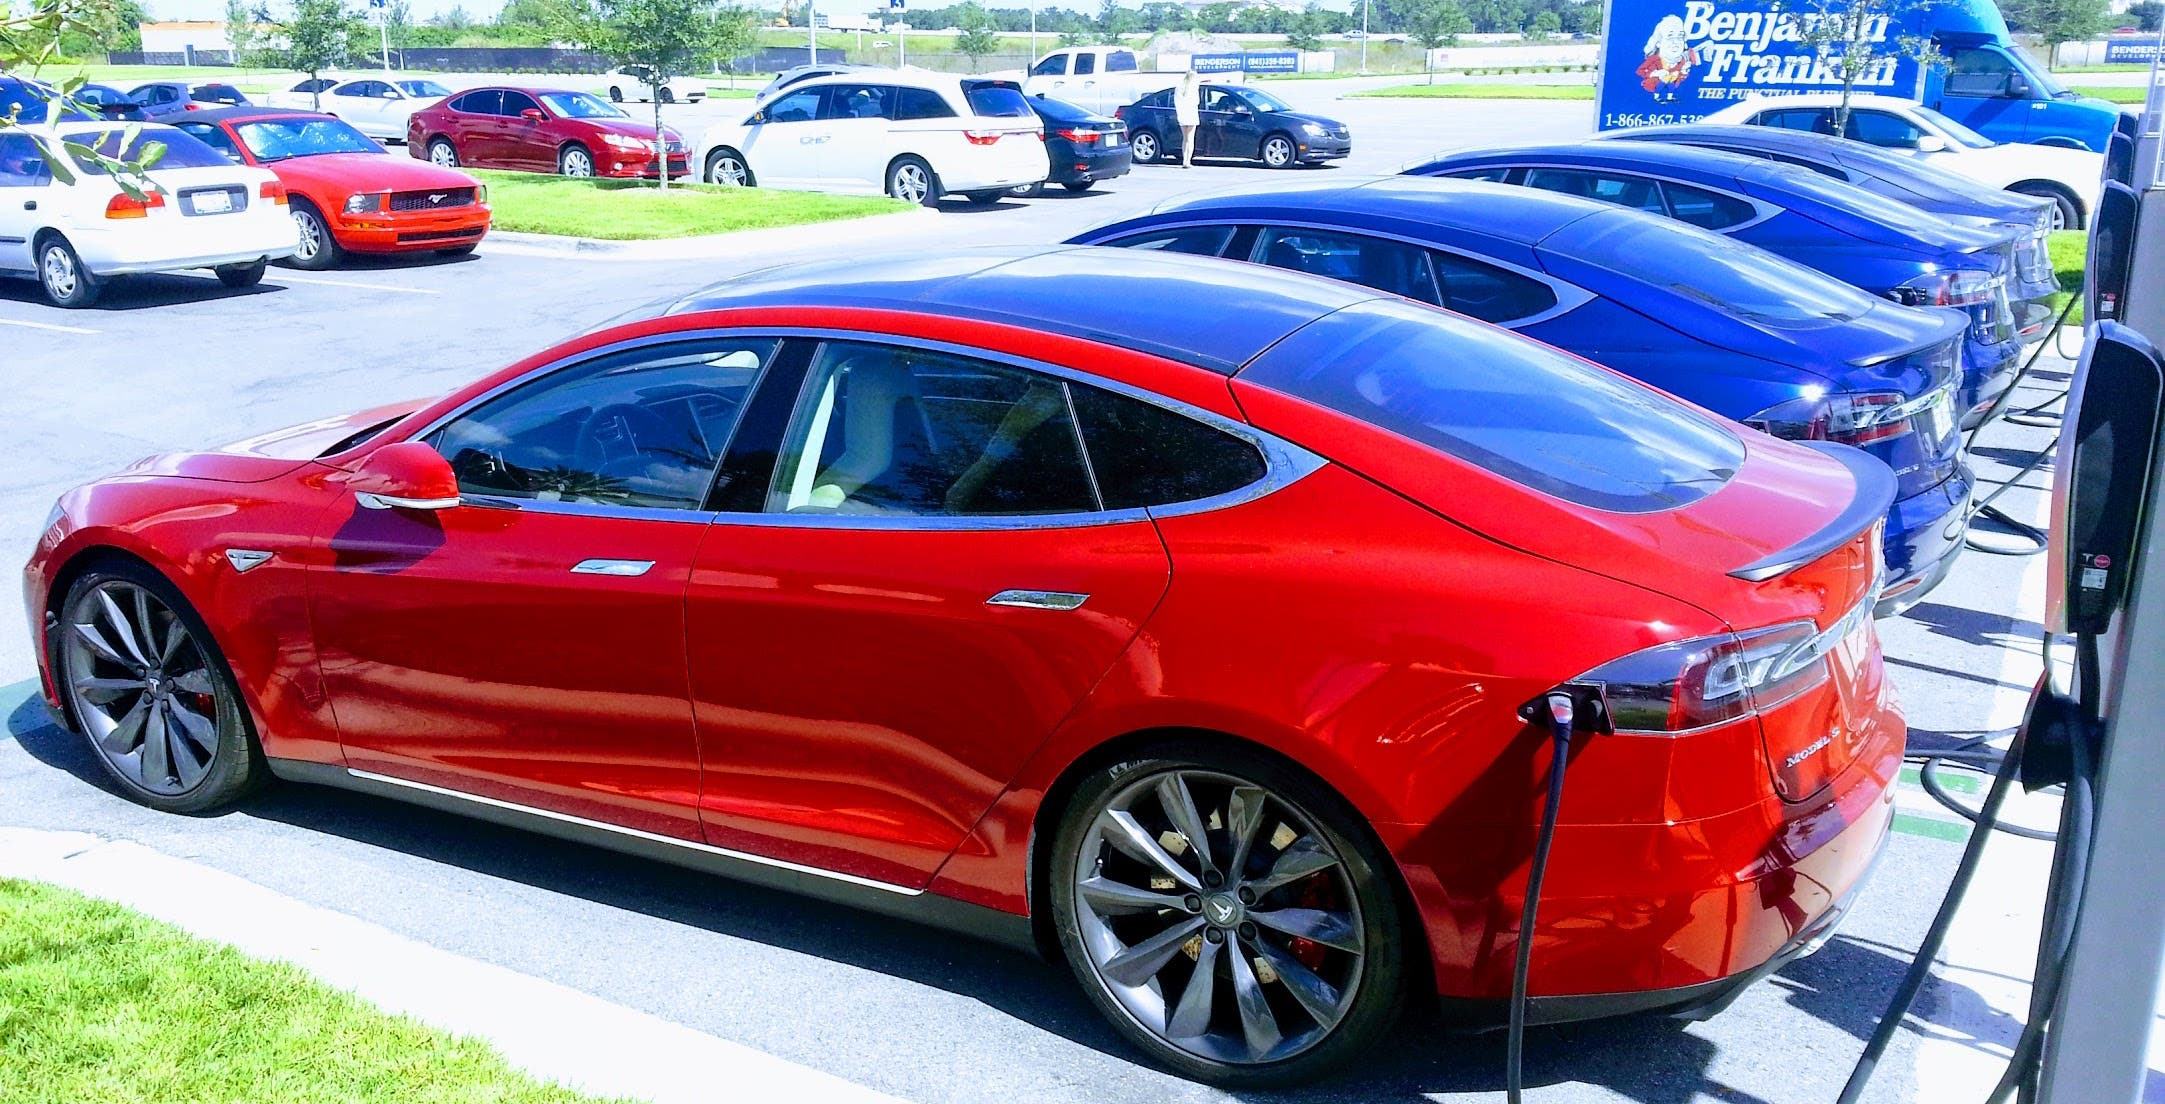 tesla ceo elon musk plans fix for people who don 39 t move car after supercharging cleantechnica. Black Bedroom Furniture Sets. Home Design Ideas